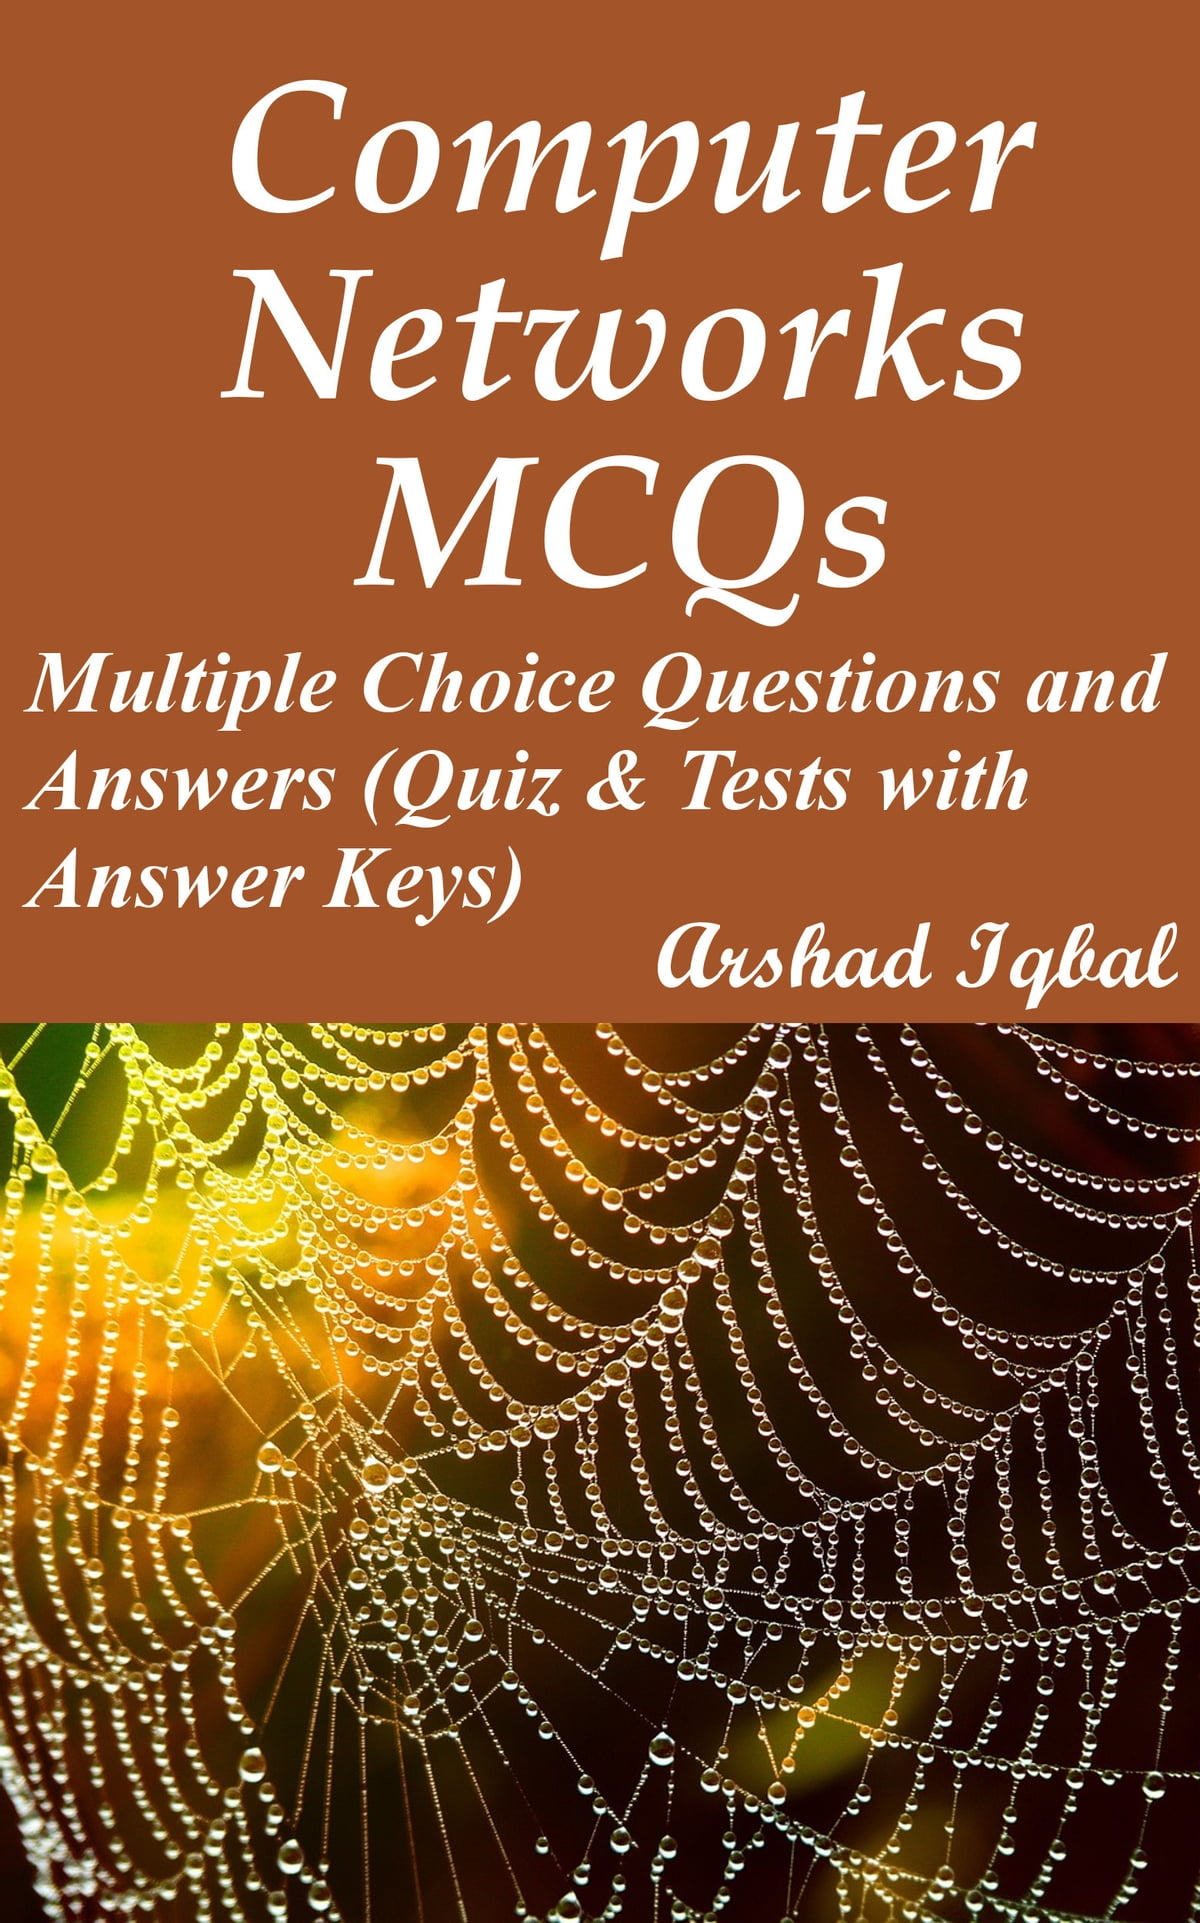 Computer Networks MCQs: Multiple Choice Questions and Answers (Quiz & Tests  with Answer Keys) ebook by Arshad Iqbal - Rakuten Kobo